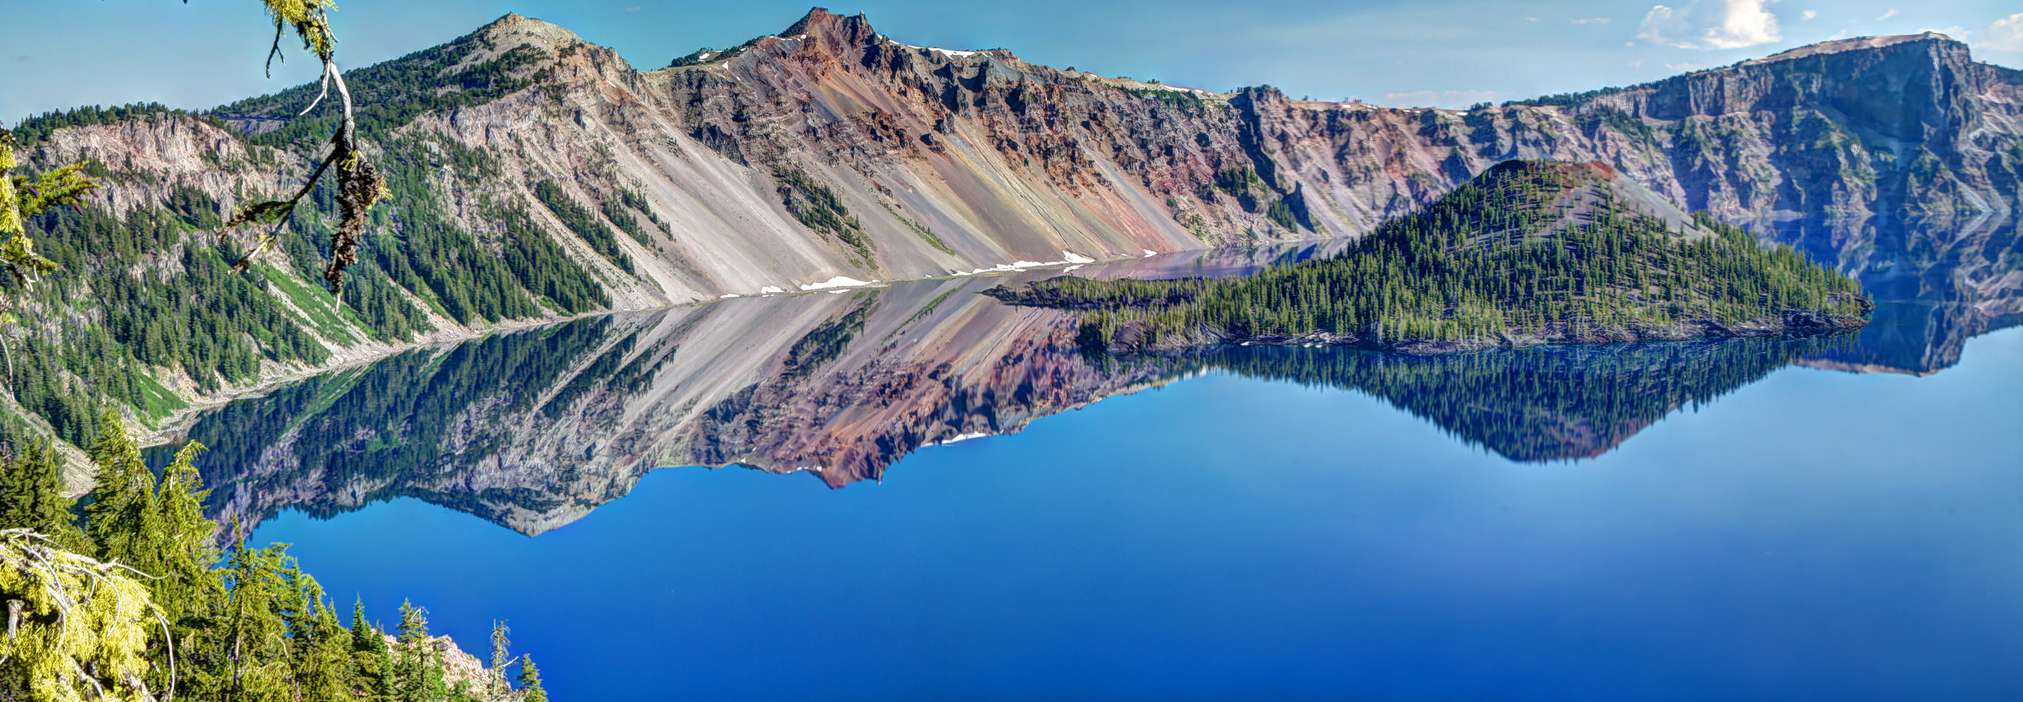 On a clear, still day Crater Lake's deep blue reflective water is mesmerizing. Photo by Scott Smithson via Flickr.